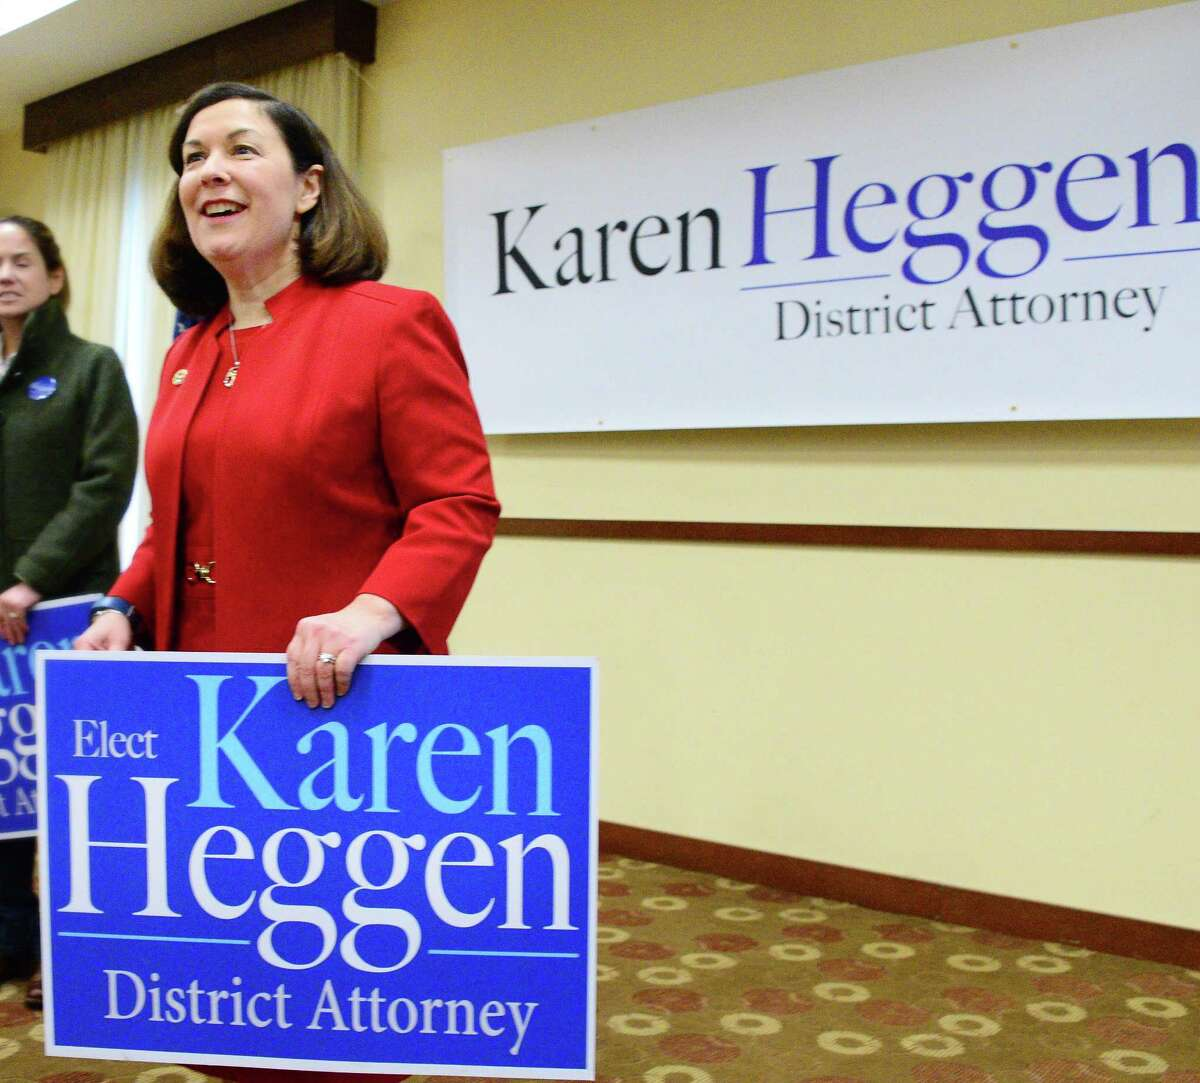 Saratoga County District Attorney Karen Heggen during a news conference to announce her re-election bid Thursday Feb. 22, 2018 in Malta, NY. (John Carl D'Annibale/Times Union)